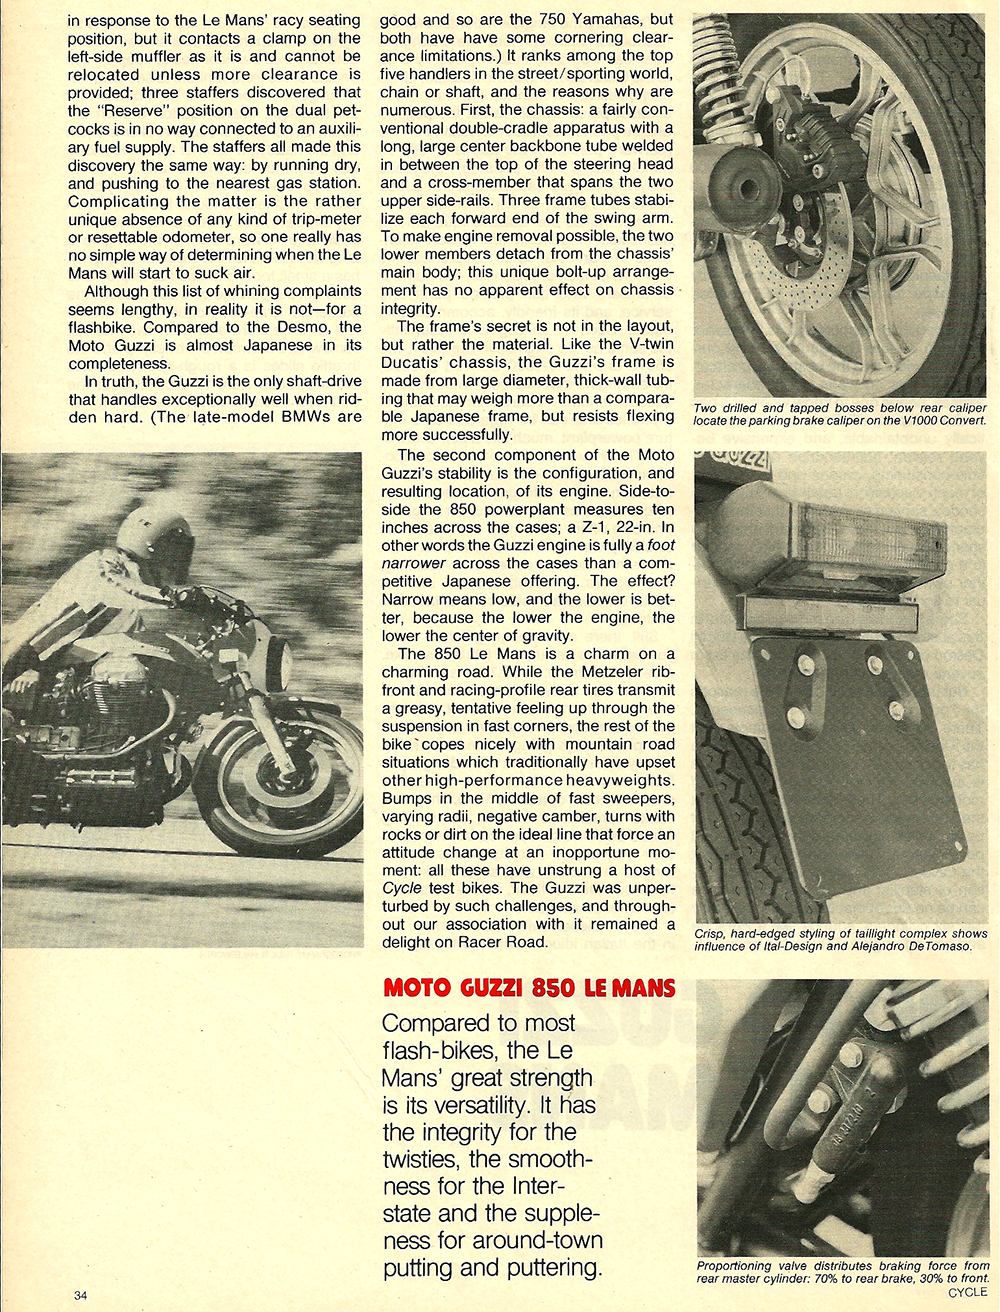 1977 Moto Guzzi 850 LeMans road test 03.jpg